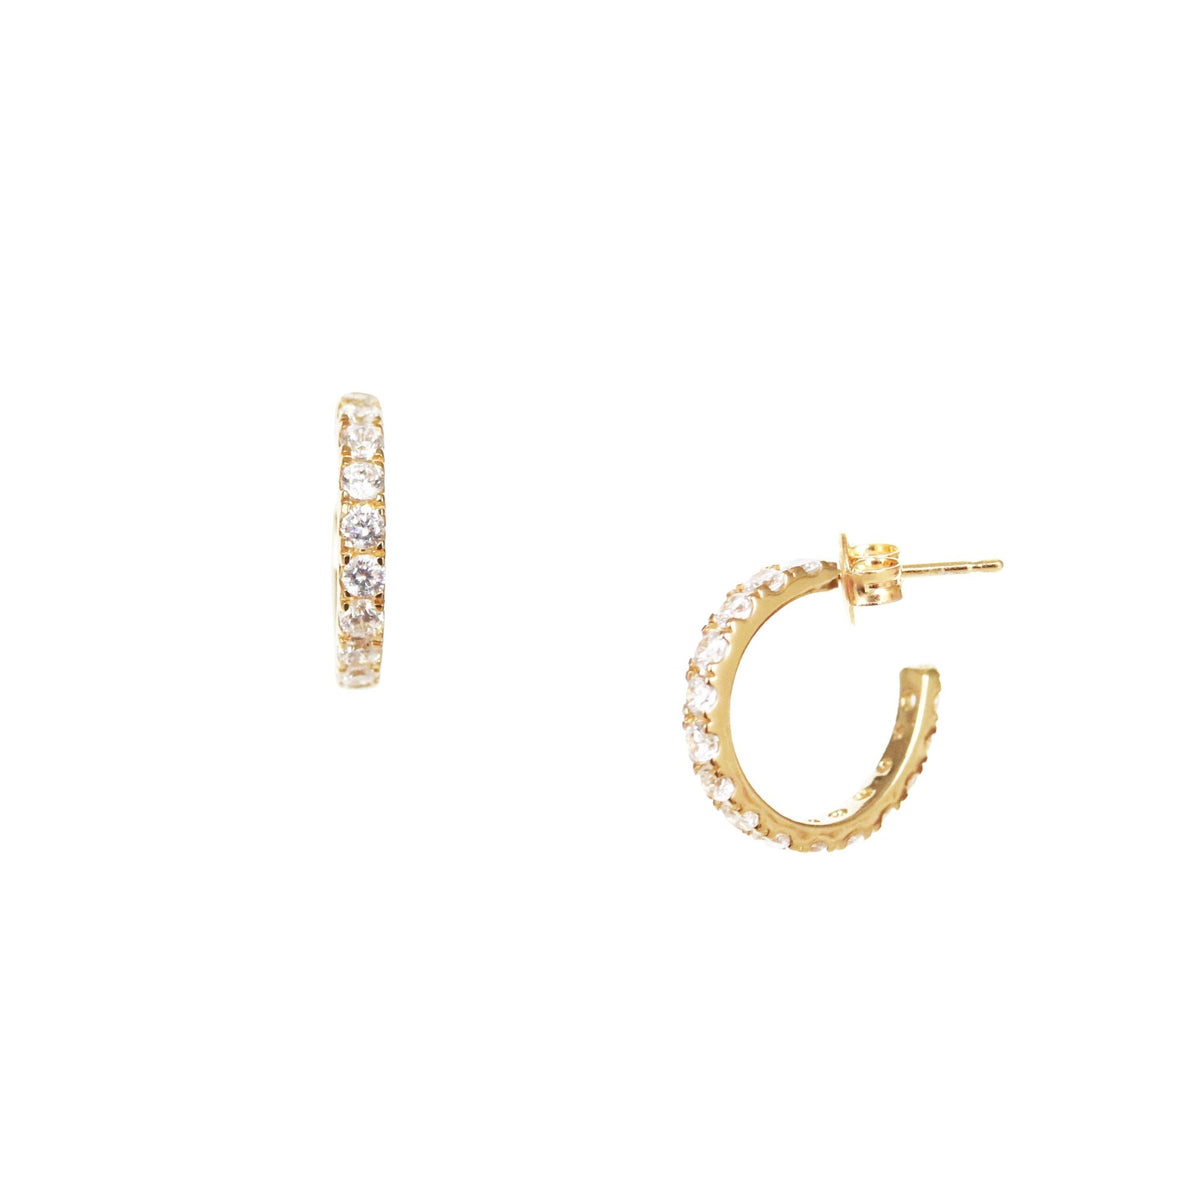 LOVE HUGGIE HOOPS - CUBIC ZIRCONAI & GOLD - SO PRETTY CARA COTTER